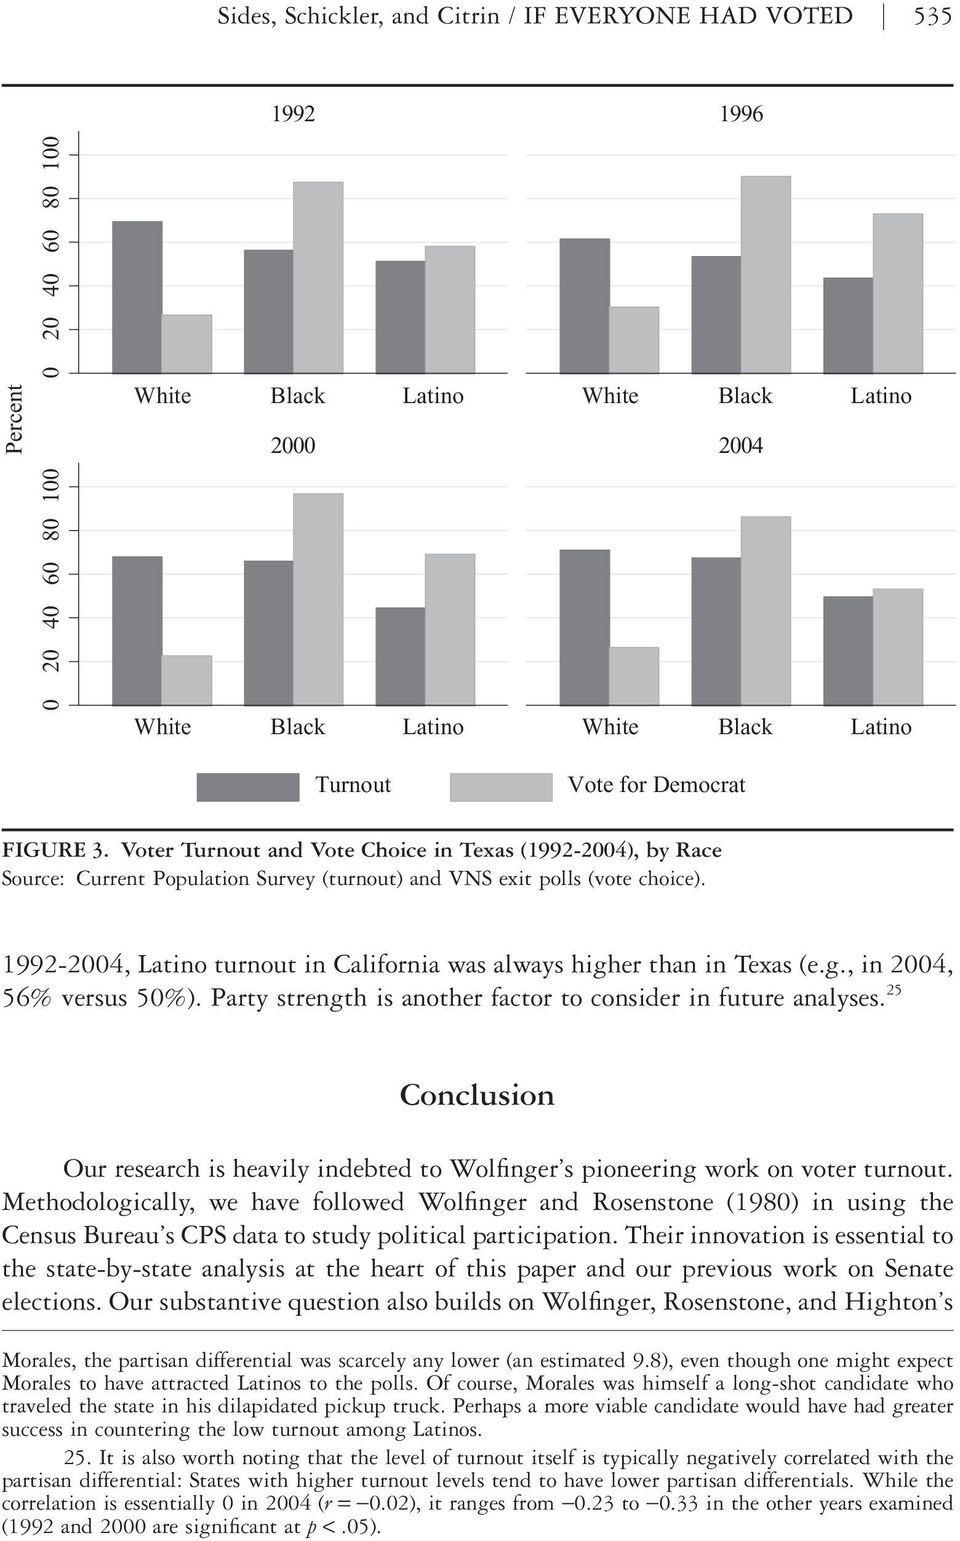 1992-2004, Latino turnout in California was always higher than in Texas (e.g., in 2004, 56% versus 50%). Party strength is another factor to consider in future analyses.